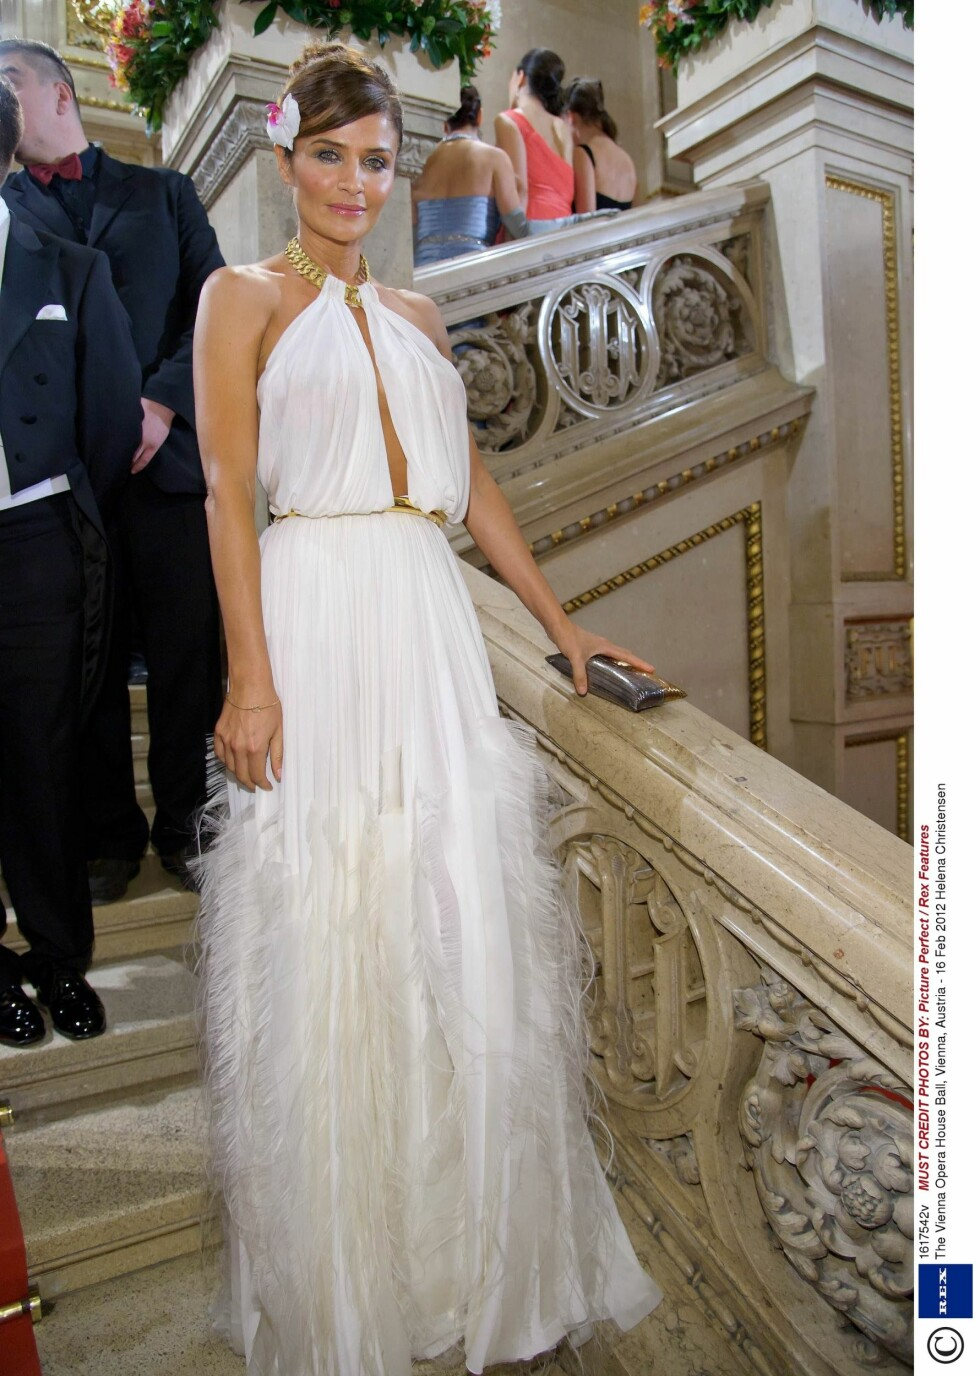 Mandatory Credit: Photo by Picture Perfect / Rex Features (1617542v) Helena Christensen The Vienna Opera House Ball, Vienna, Austria - 16 Feb 2012   / ALL OVER PRESS / ALL OVER PRESS Foto: All Over Press